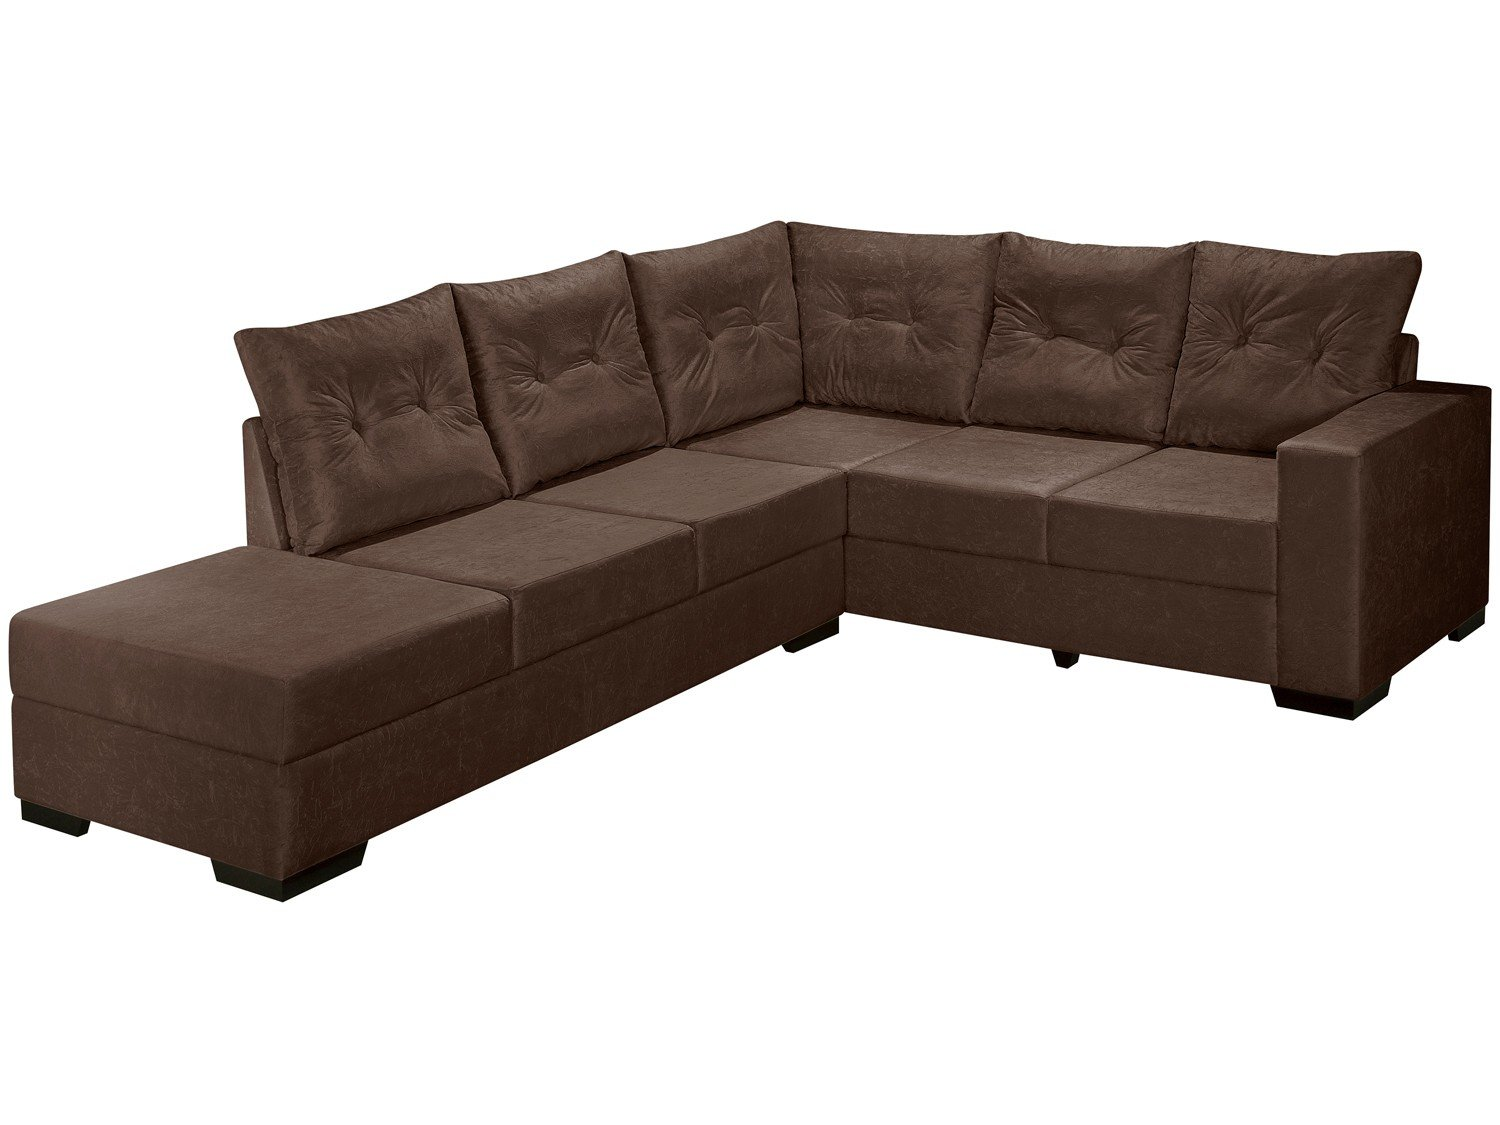 Sofa De Canto Retratil E Reclinavel Magazine Luiza | www ...